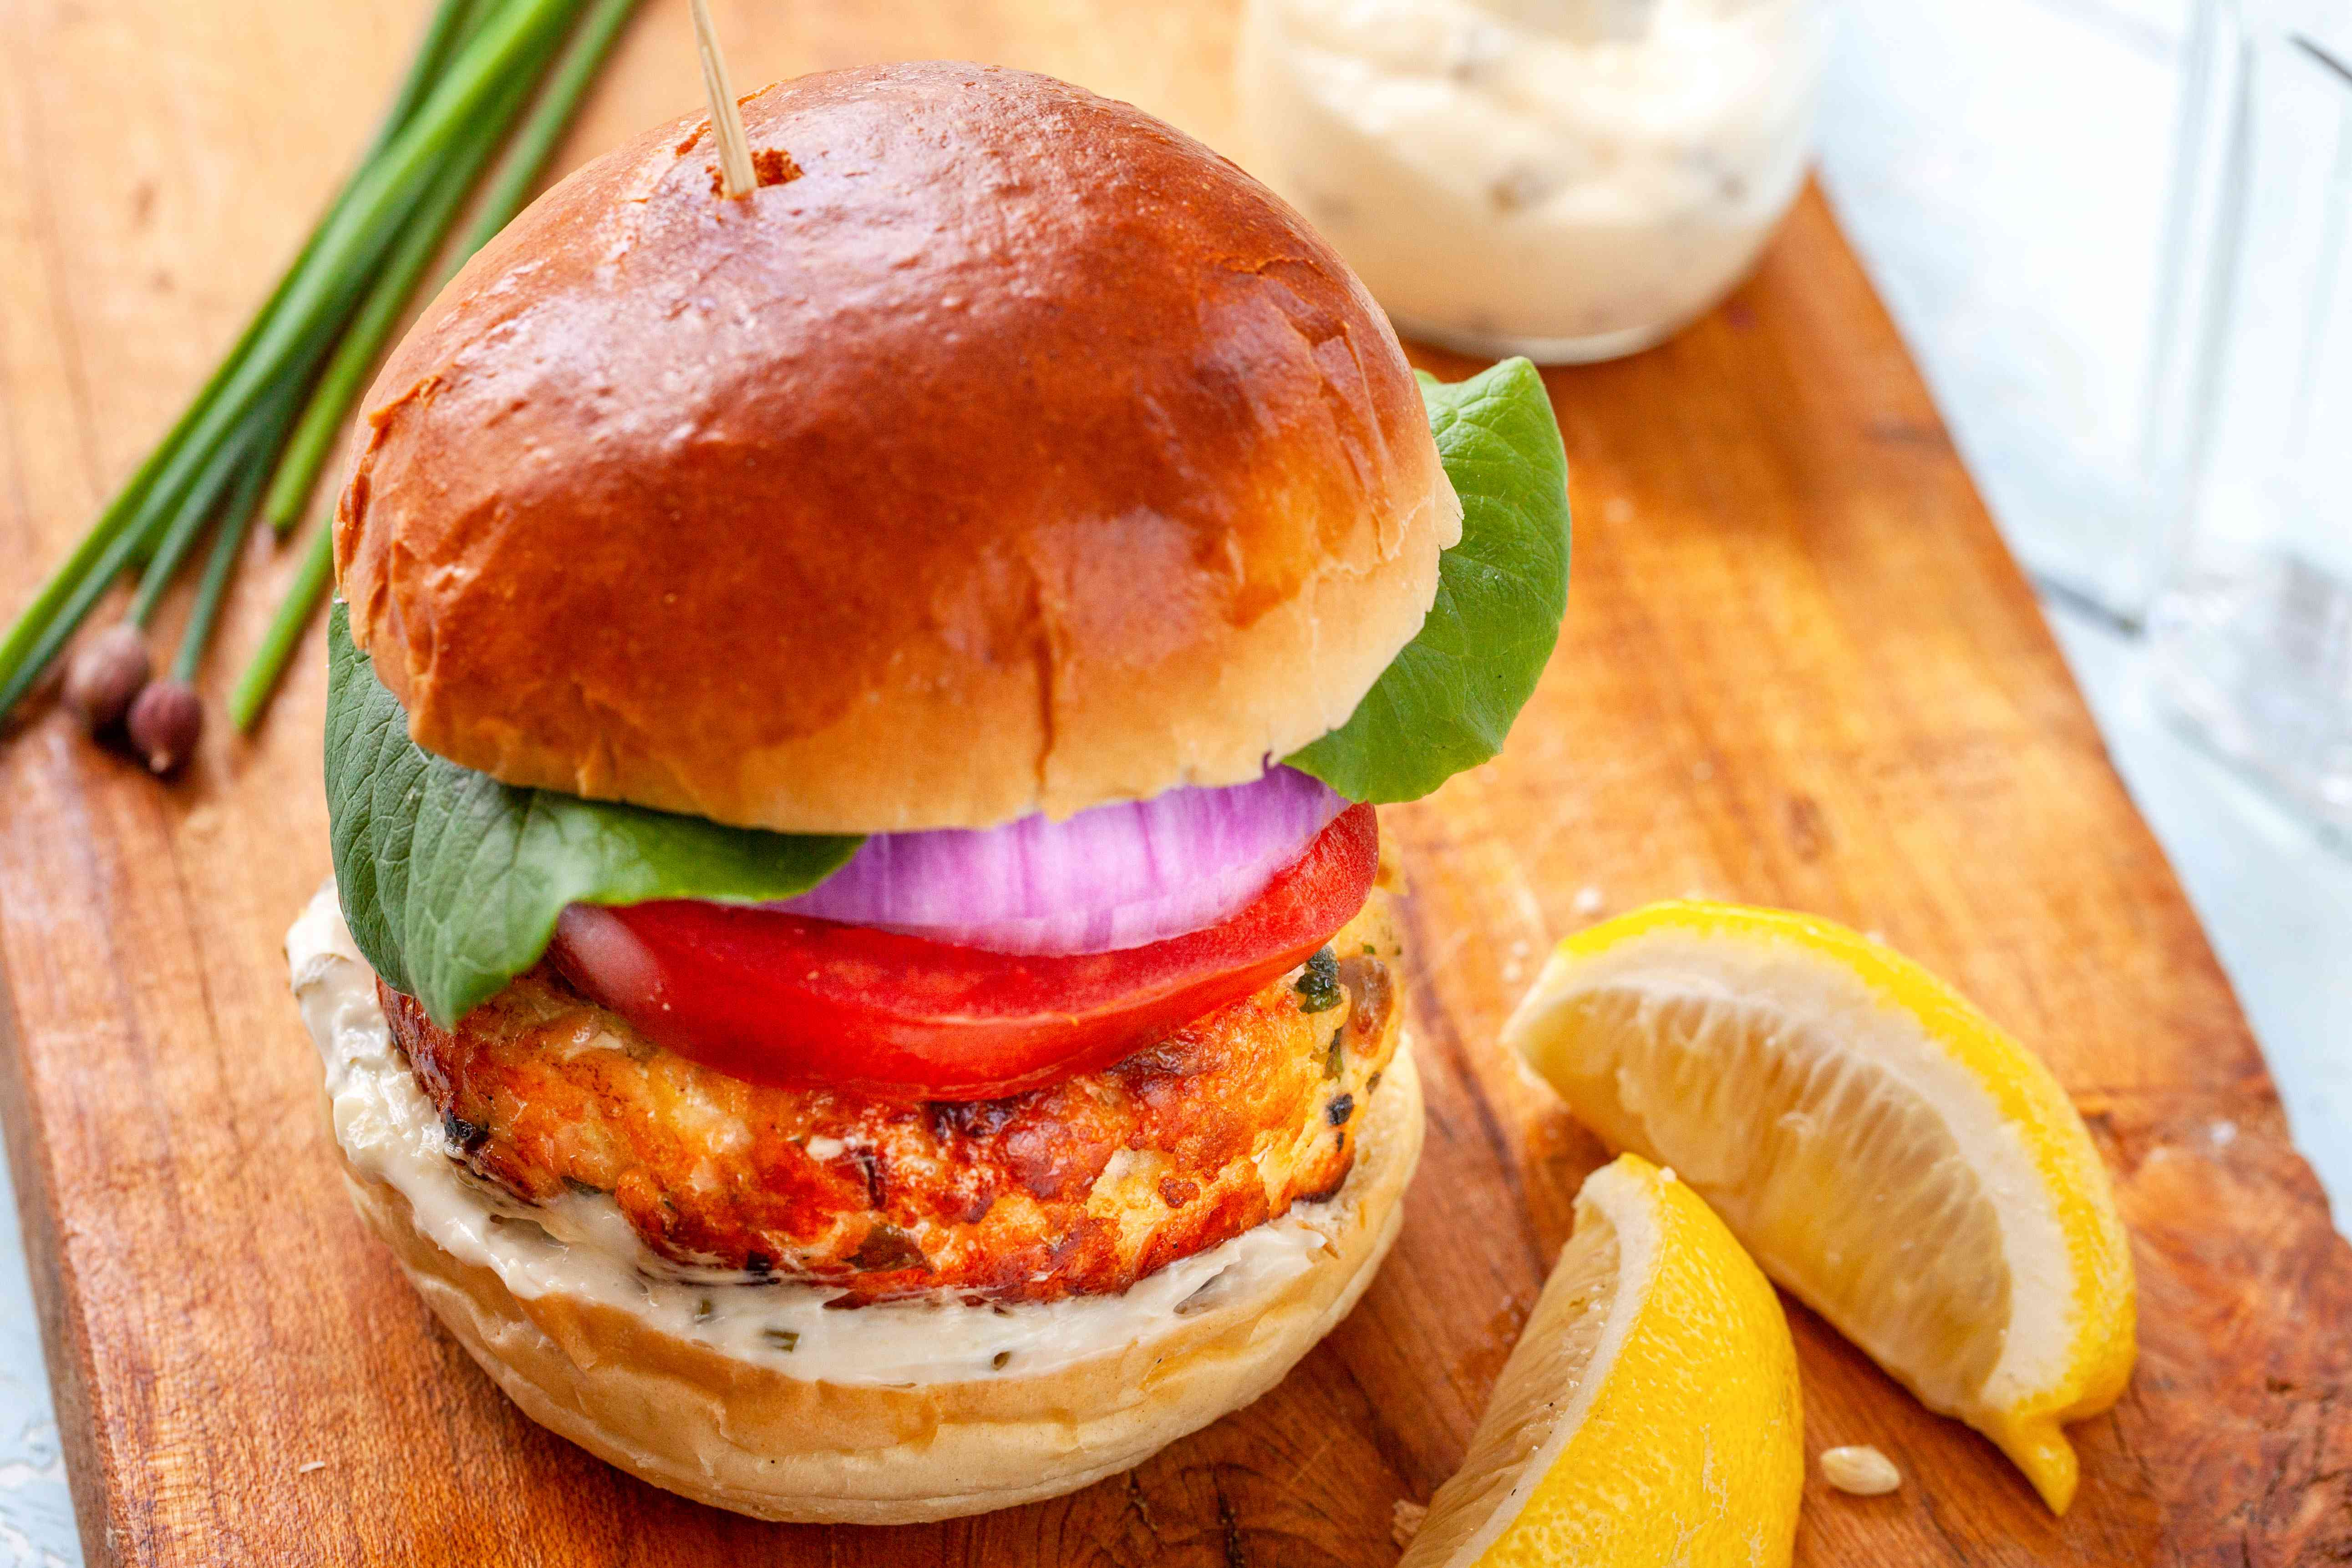 Perfect salmon burger on a wooden board.